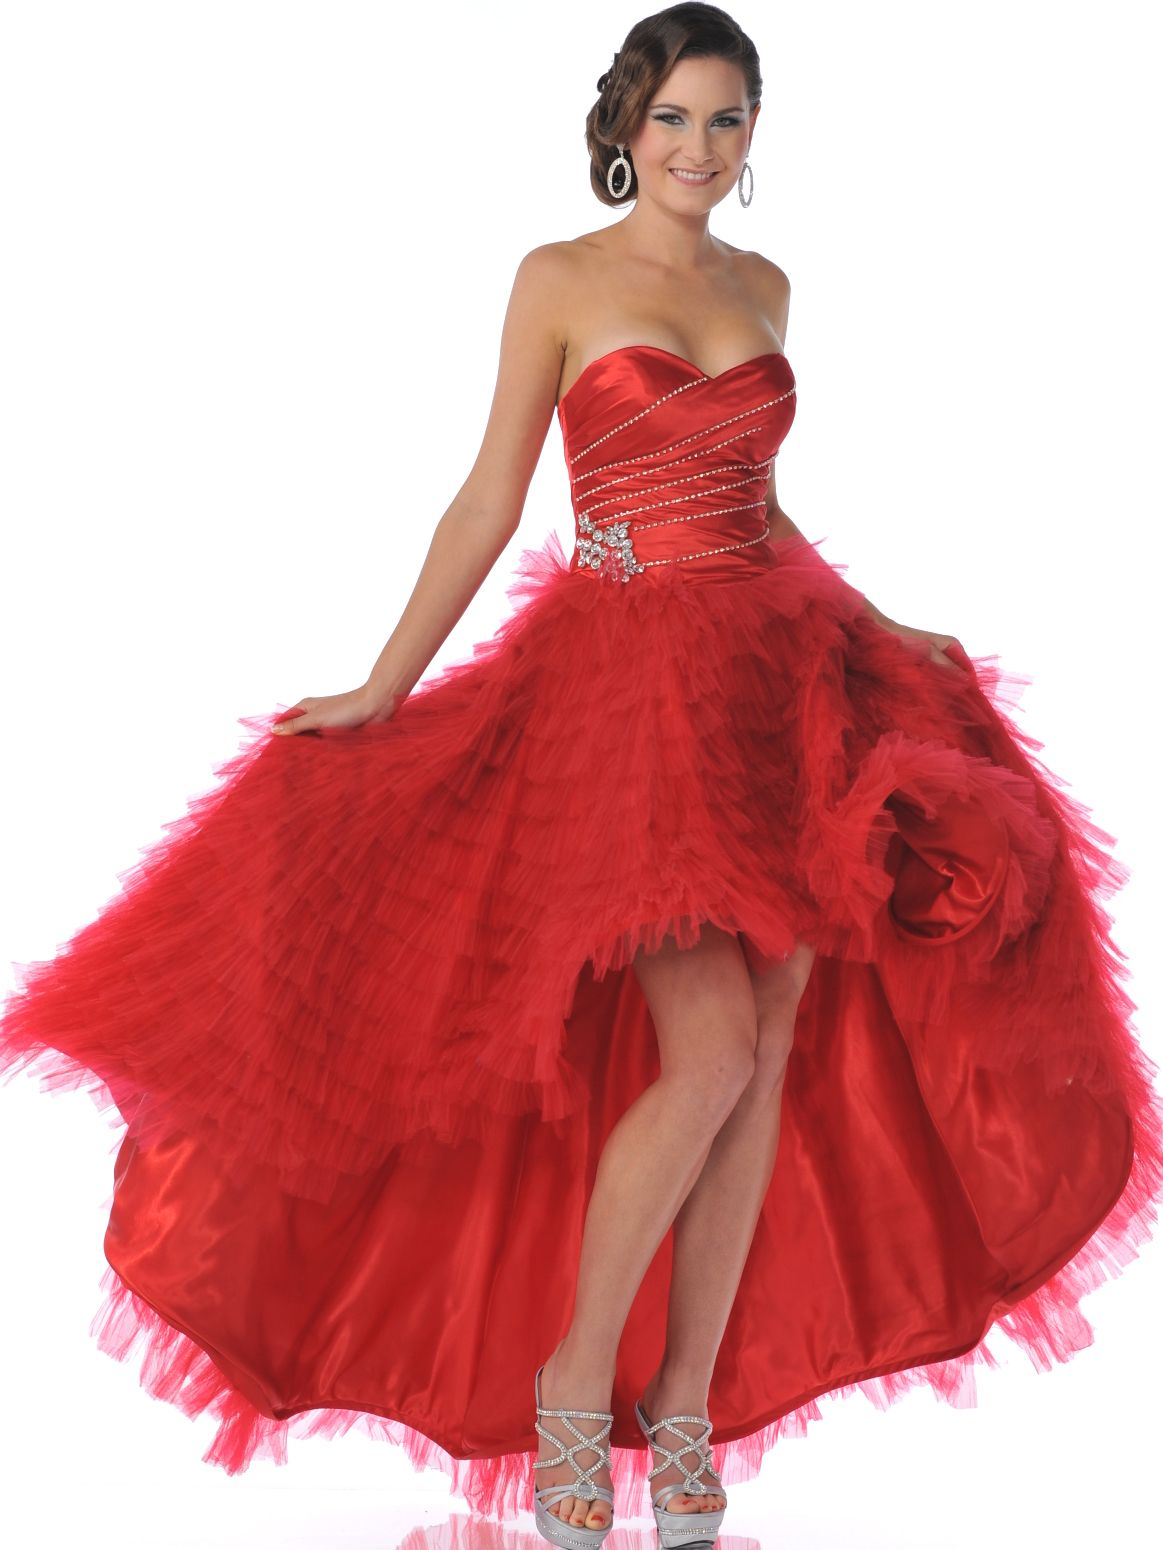 Red strapless sweetheart high low prom dress sung boutique la red strapless sweetheart high low prom dress sung boutique la ombrellifo Image collections